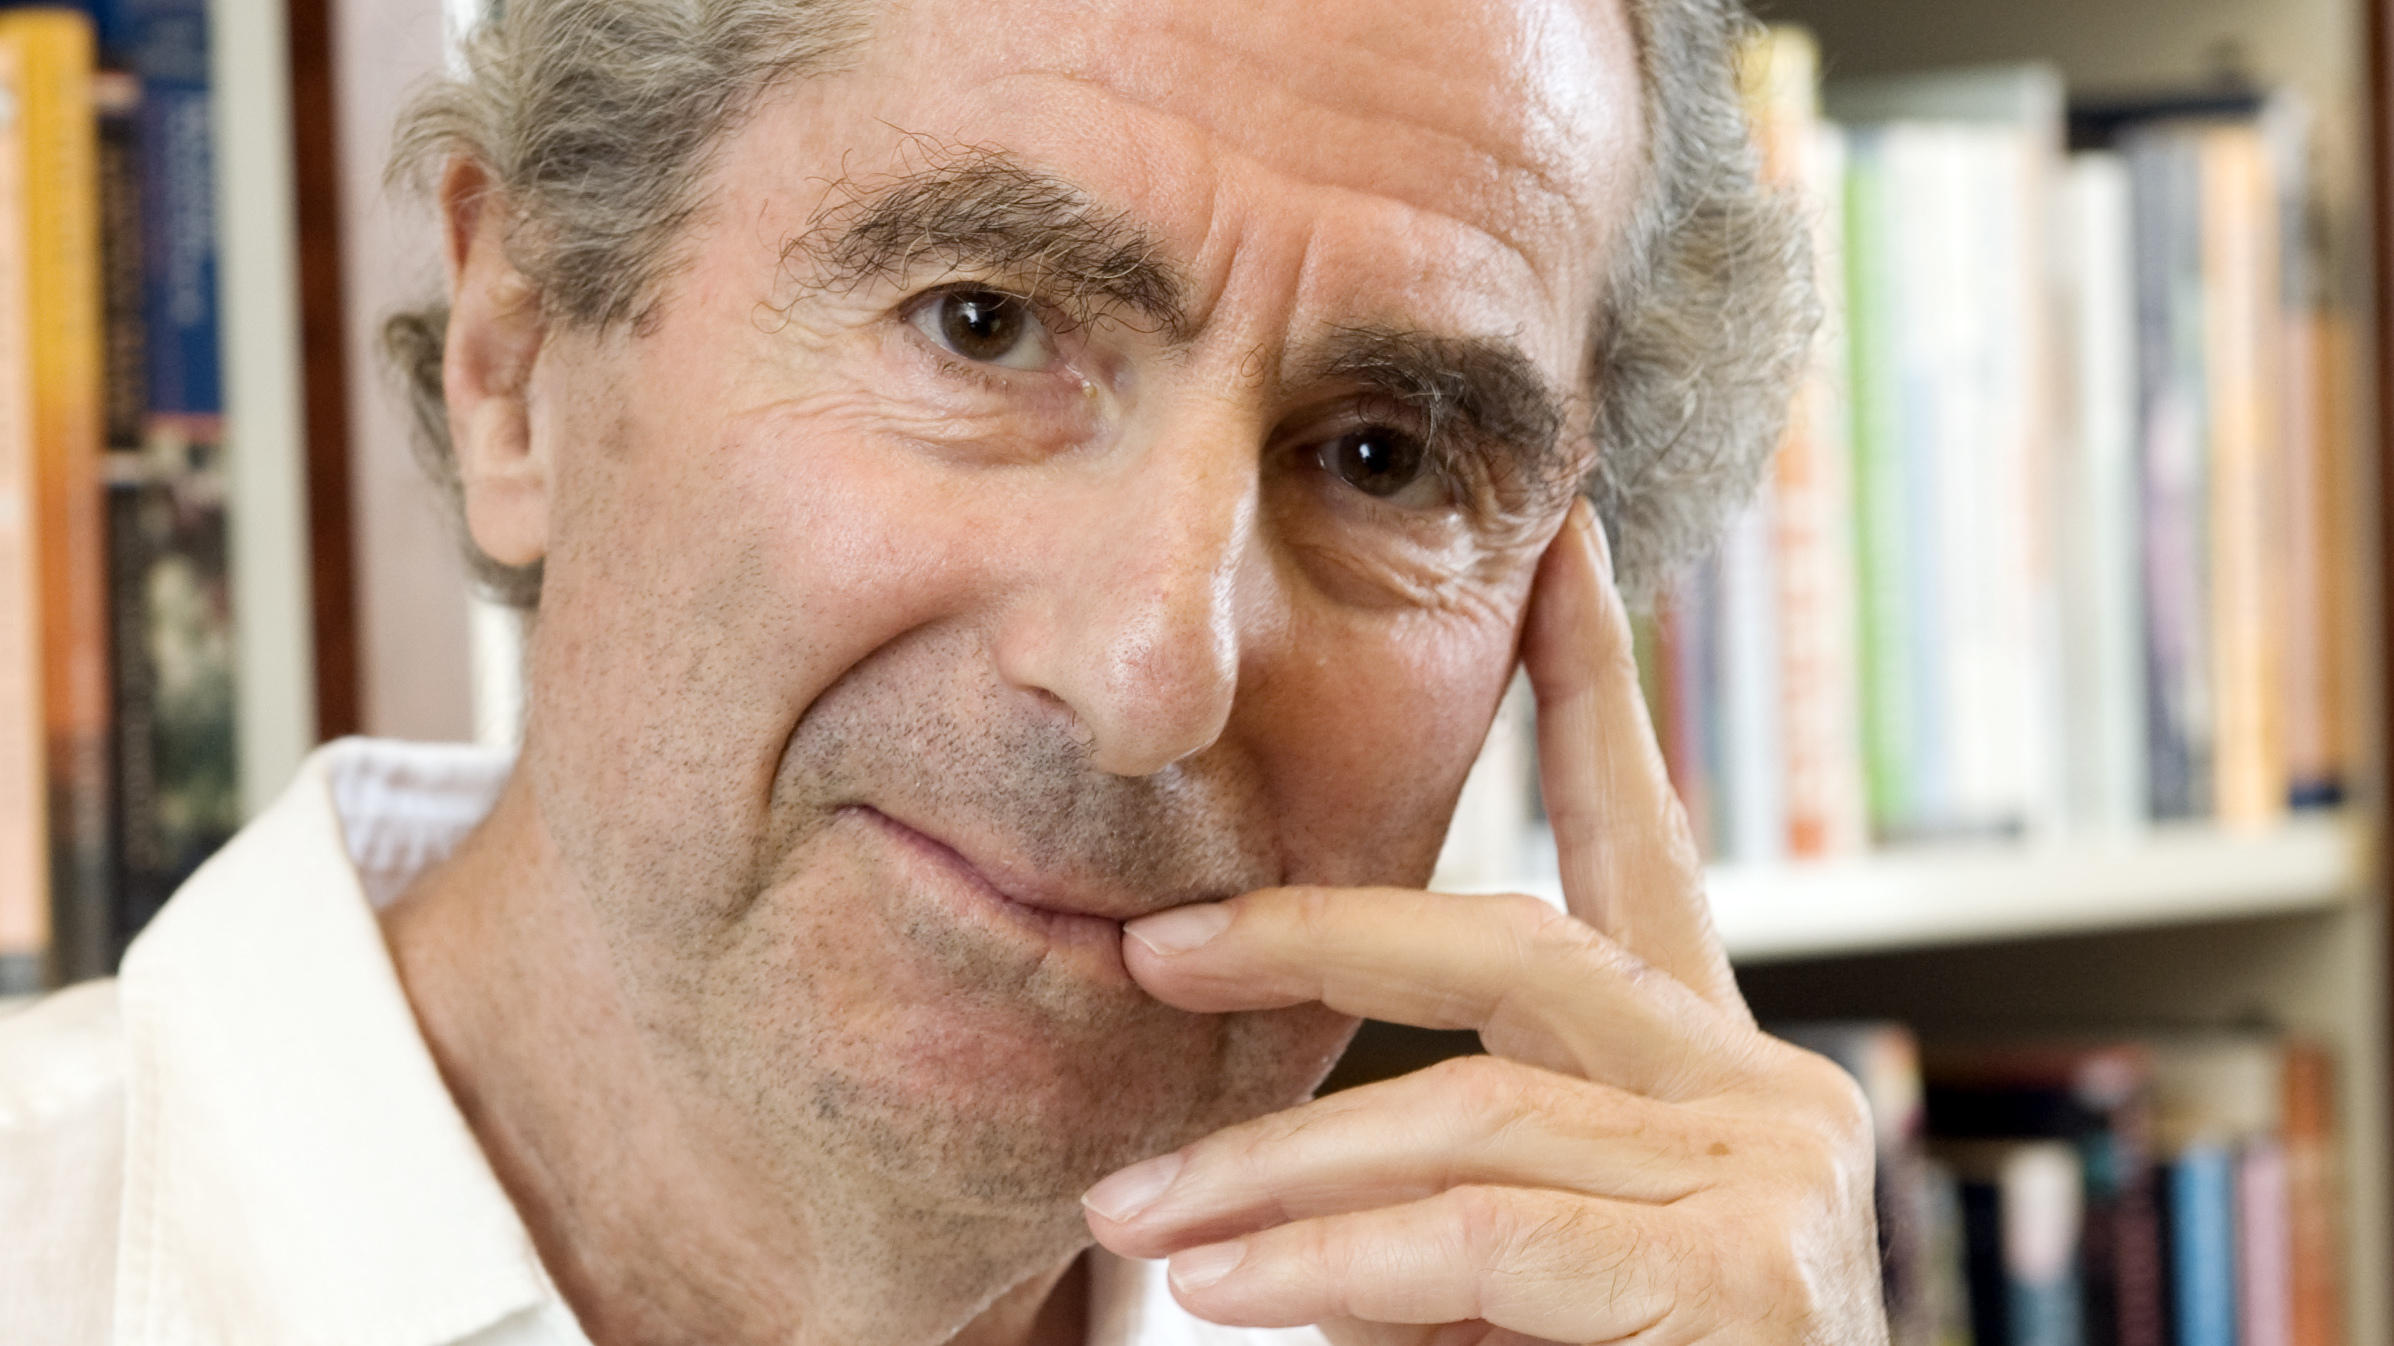 Philip Roth wrote more than two dozen books over six decades. In his later  years, he wrote several short novels about the physical indignities of  aging.